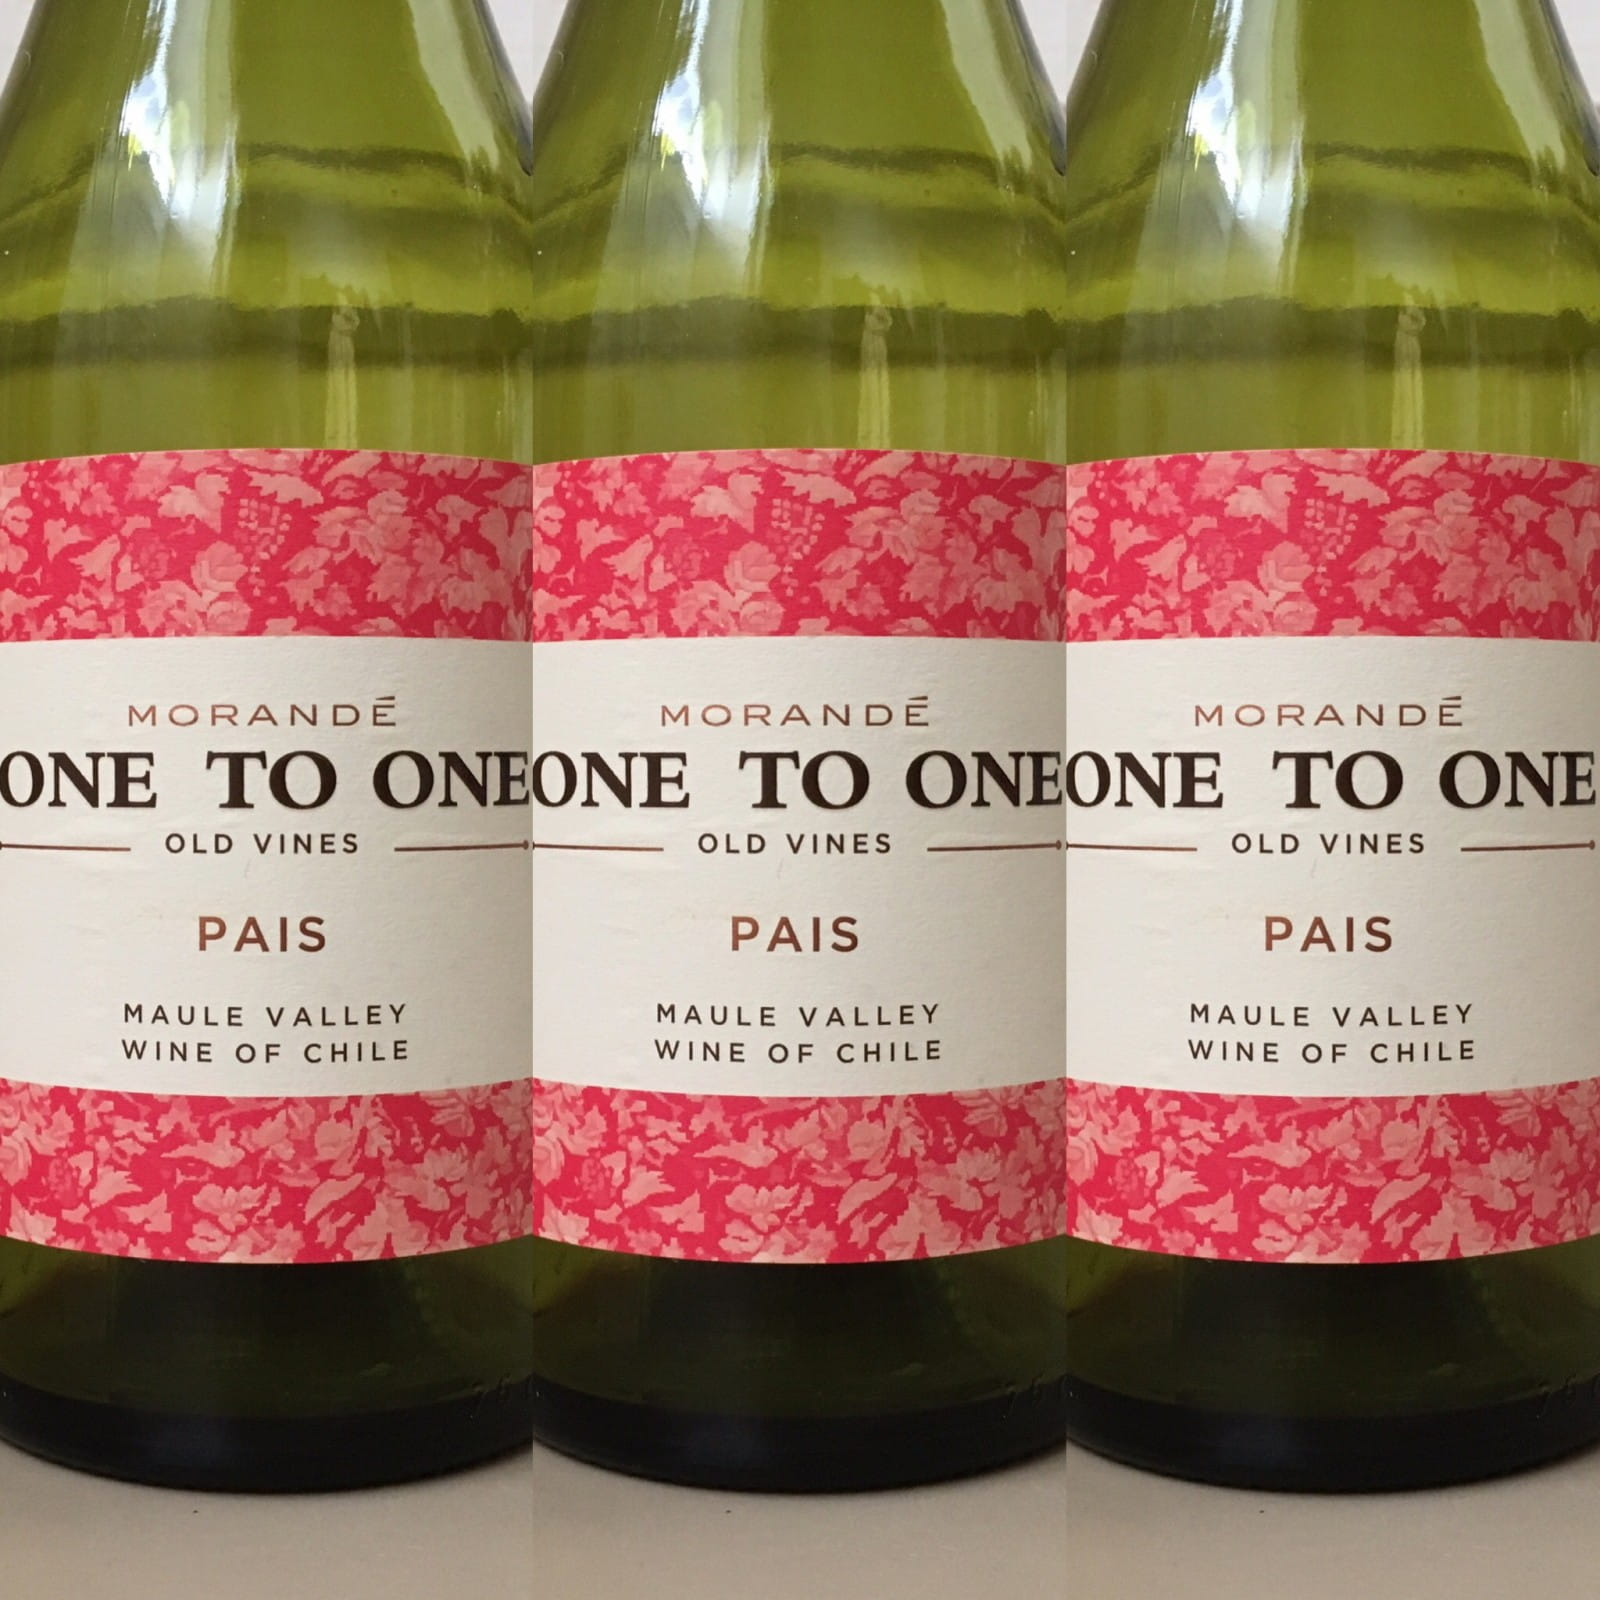 Wine of the week: Morande One to One Pais